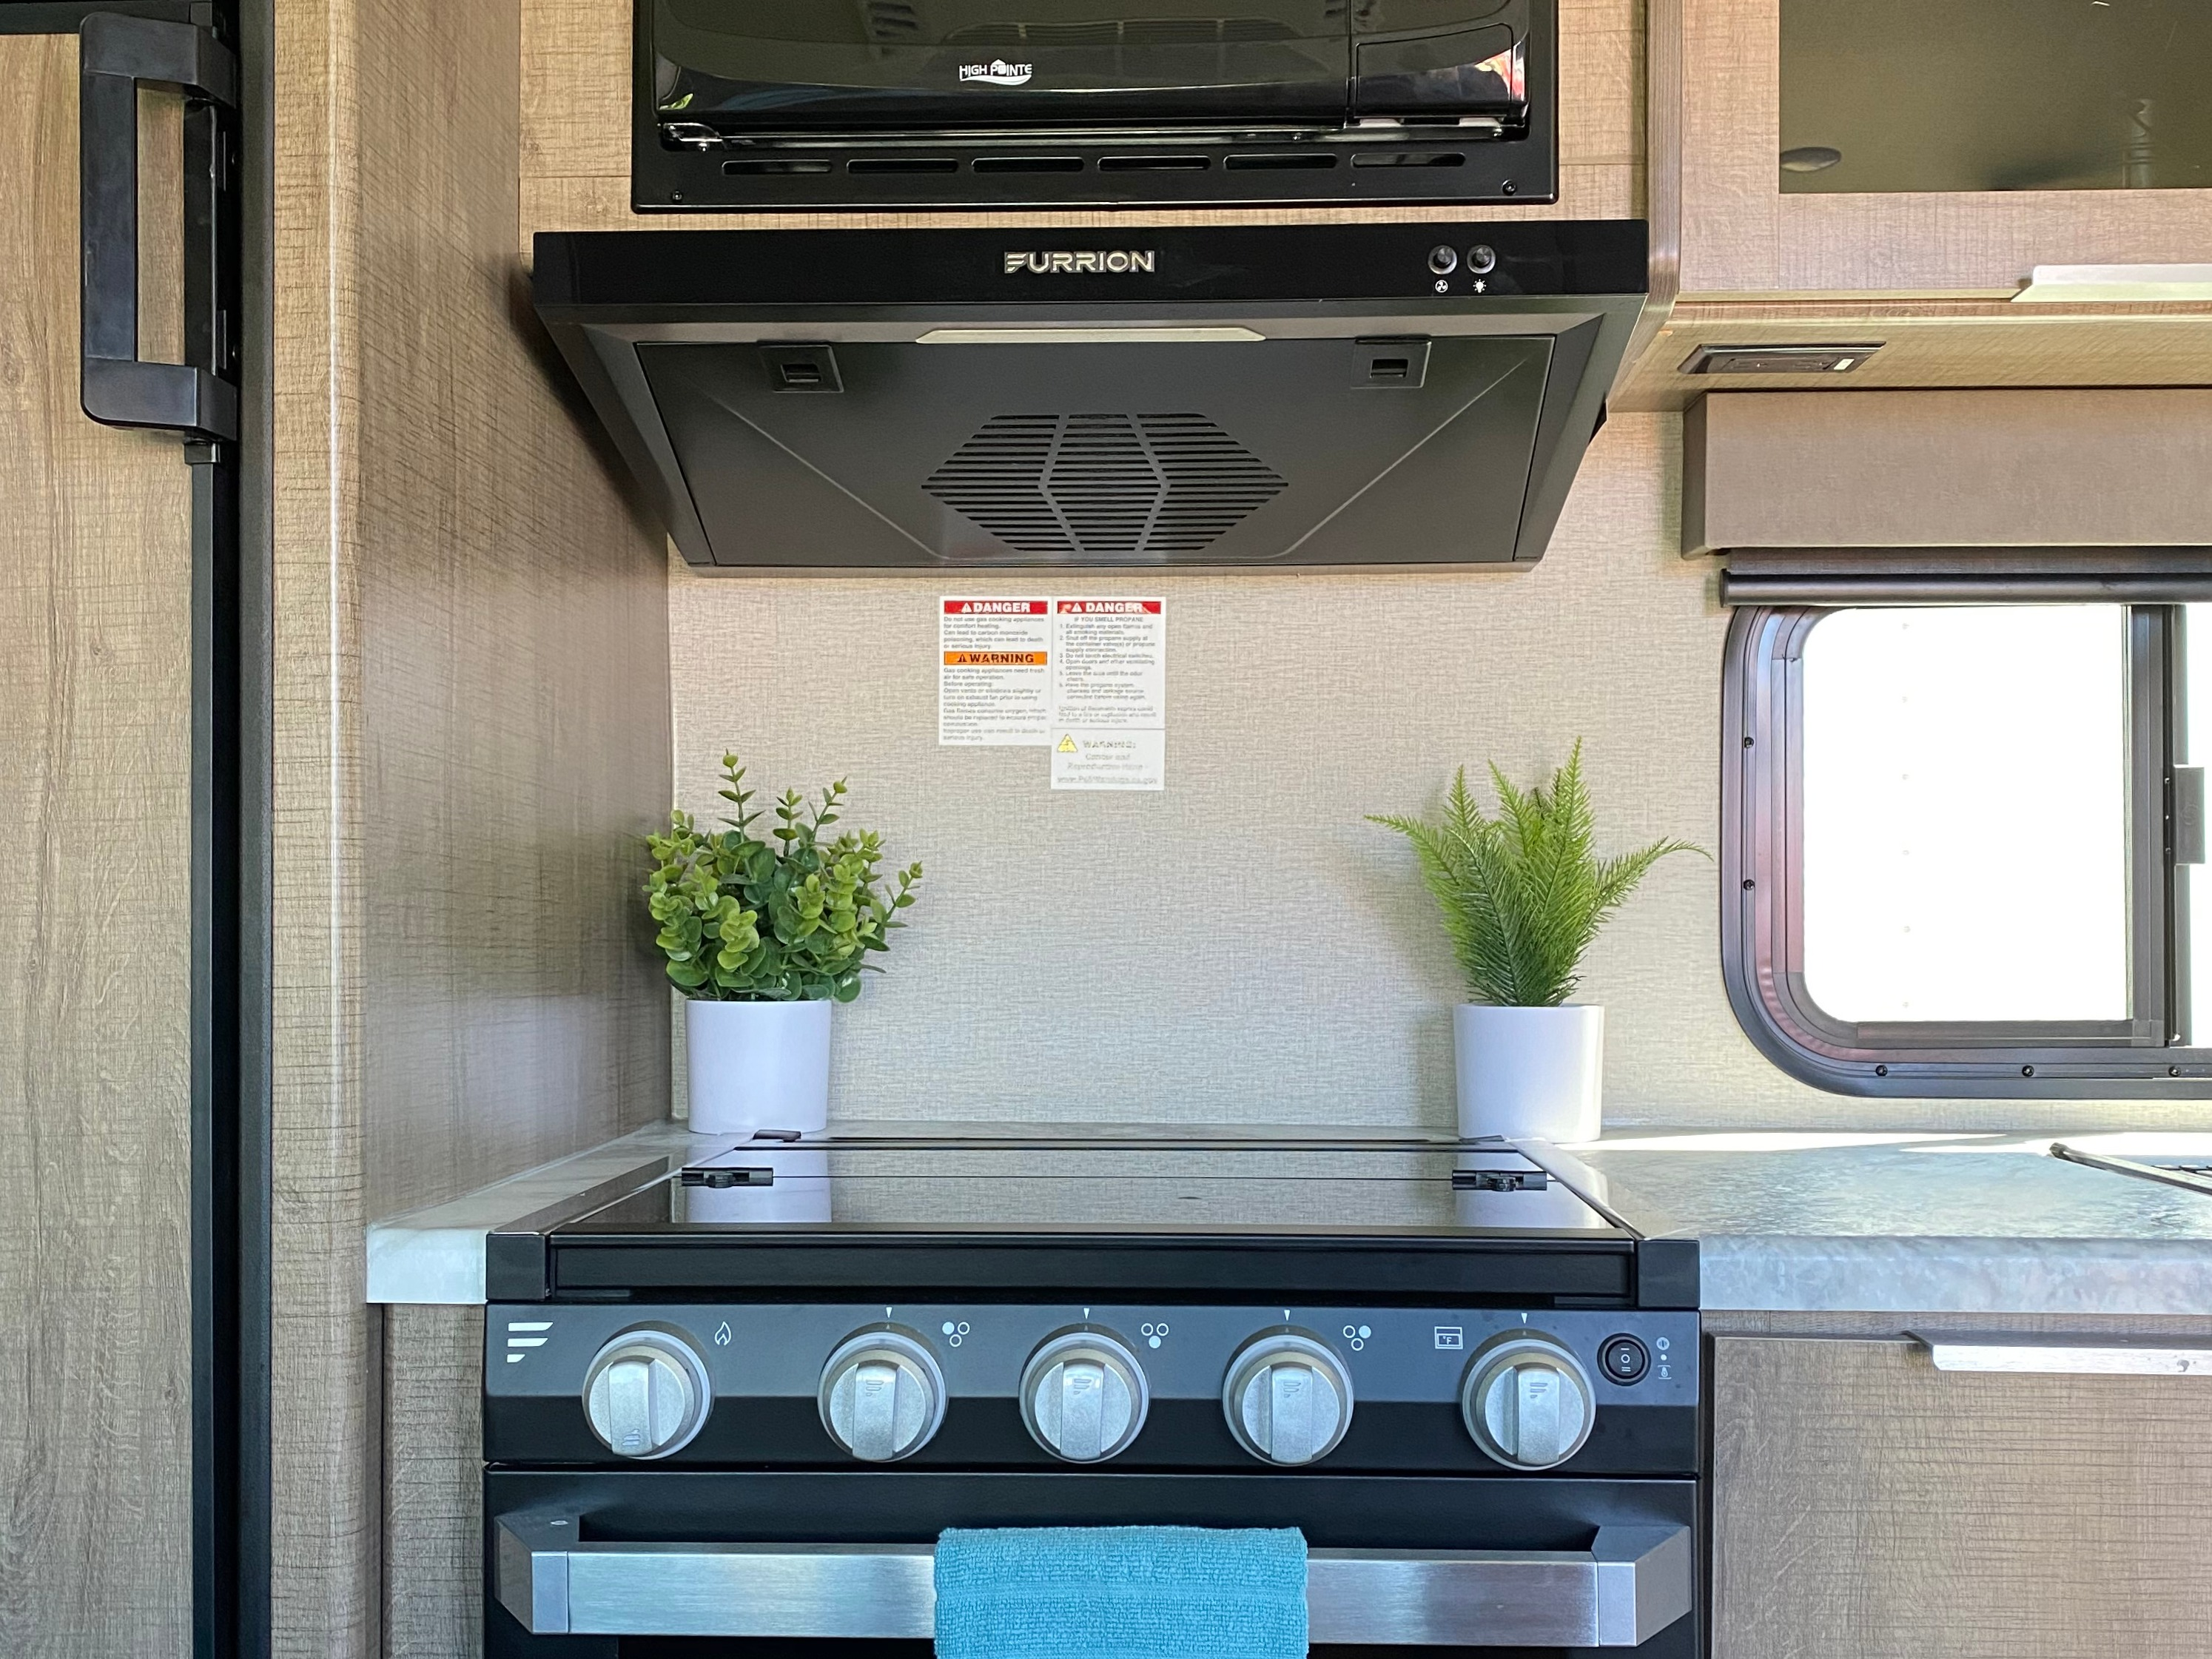 Buzz has all the major (RV size) appliances in the kitchen! Microwave, stove, oven and refrigerator with freezer.. Grand Design Other 2021